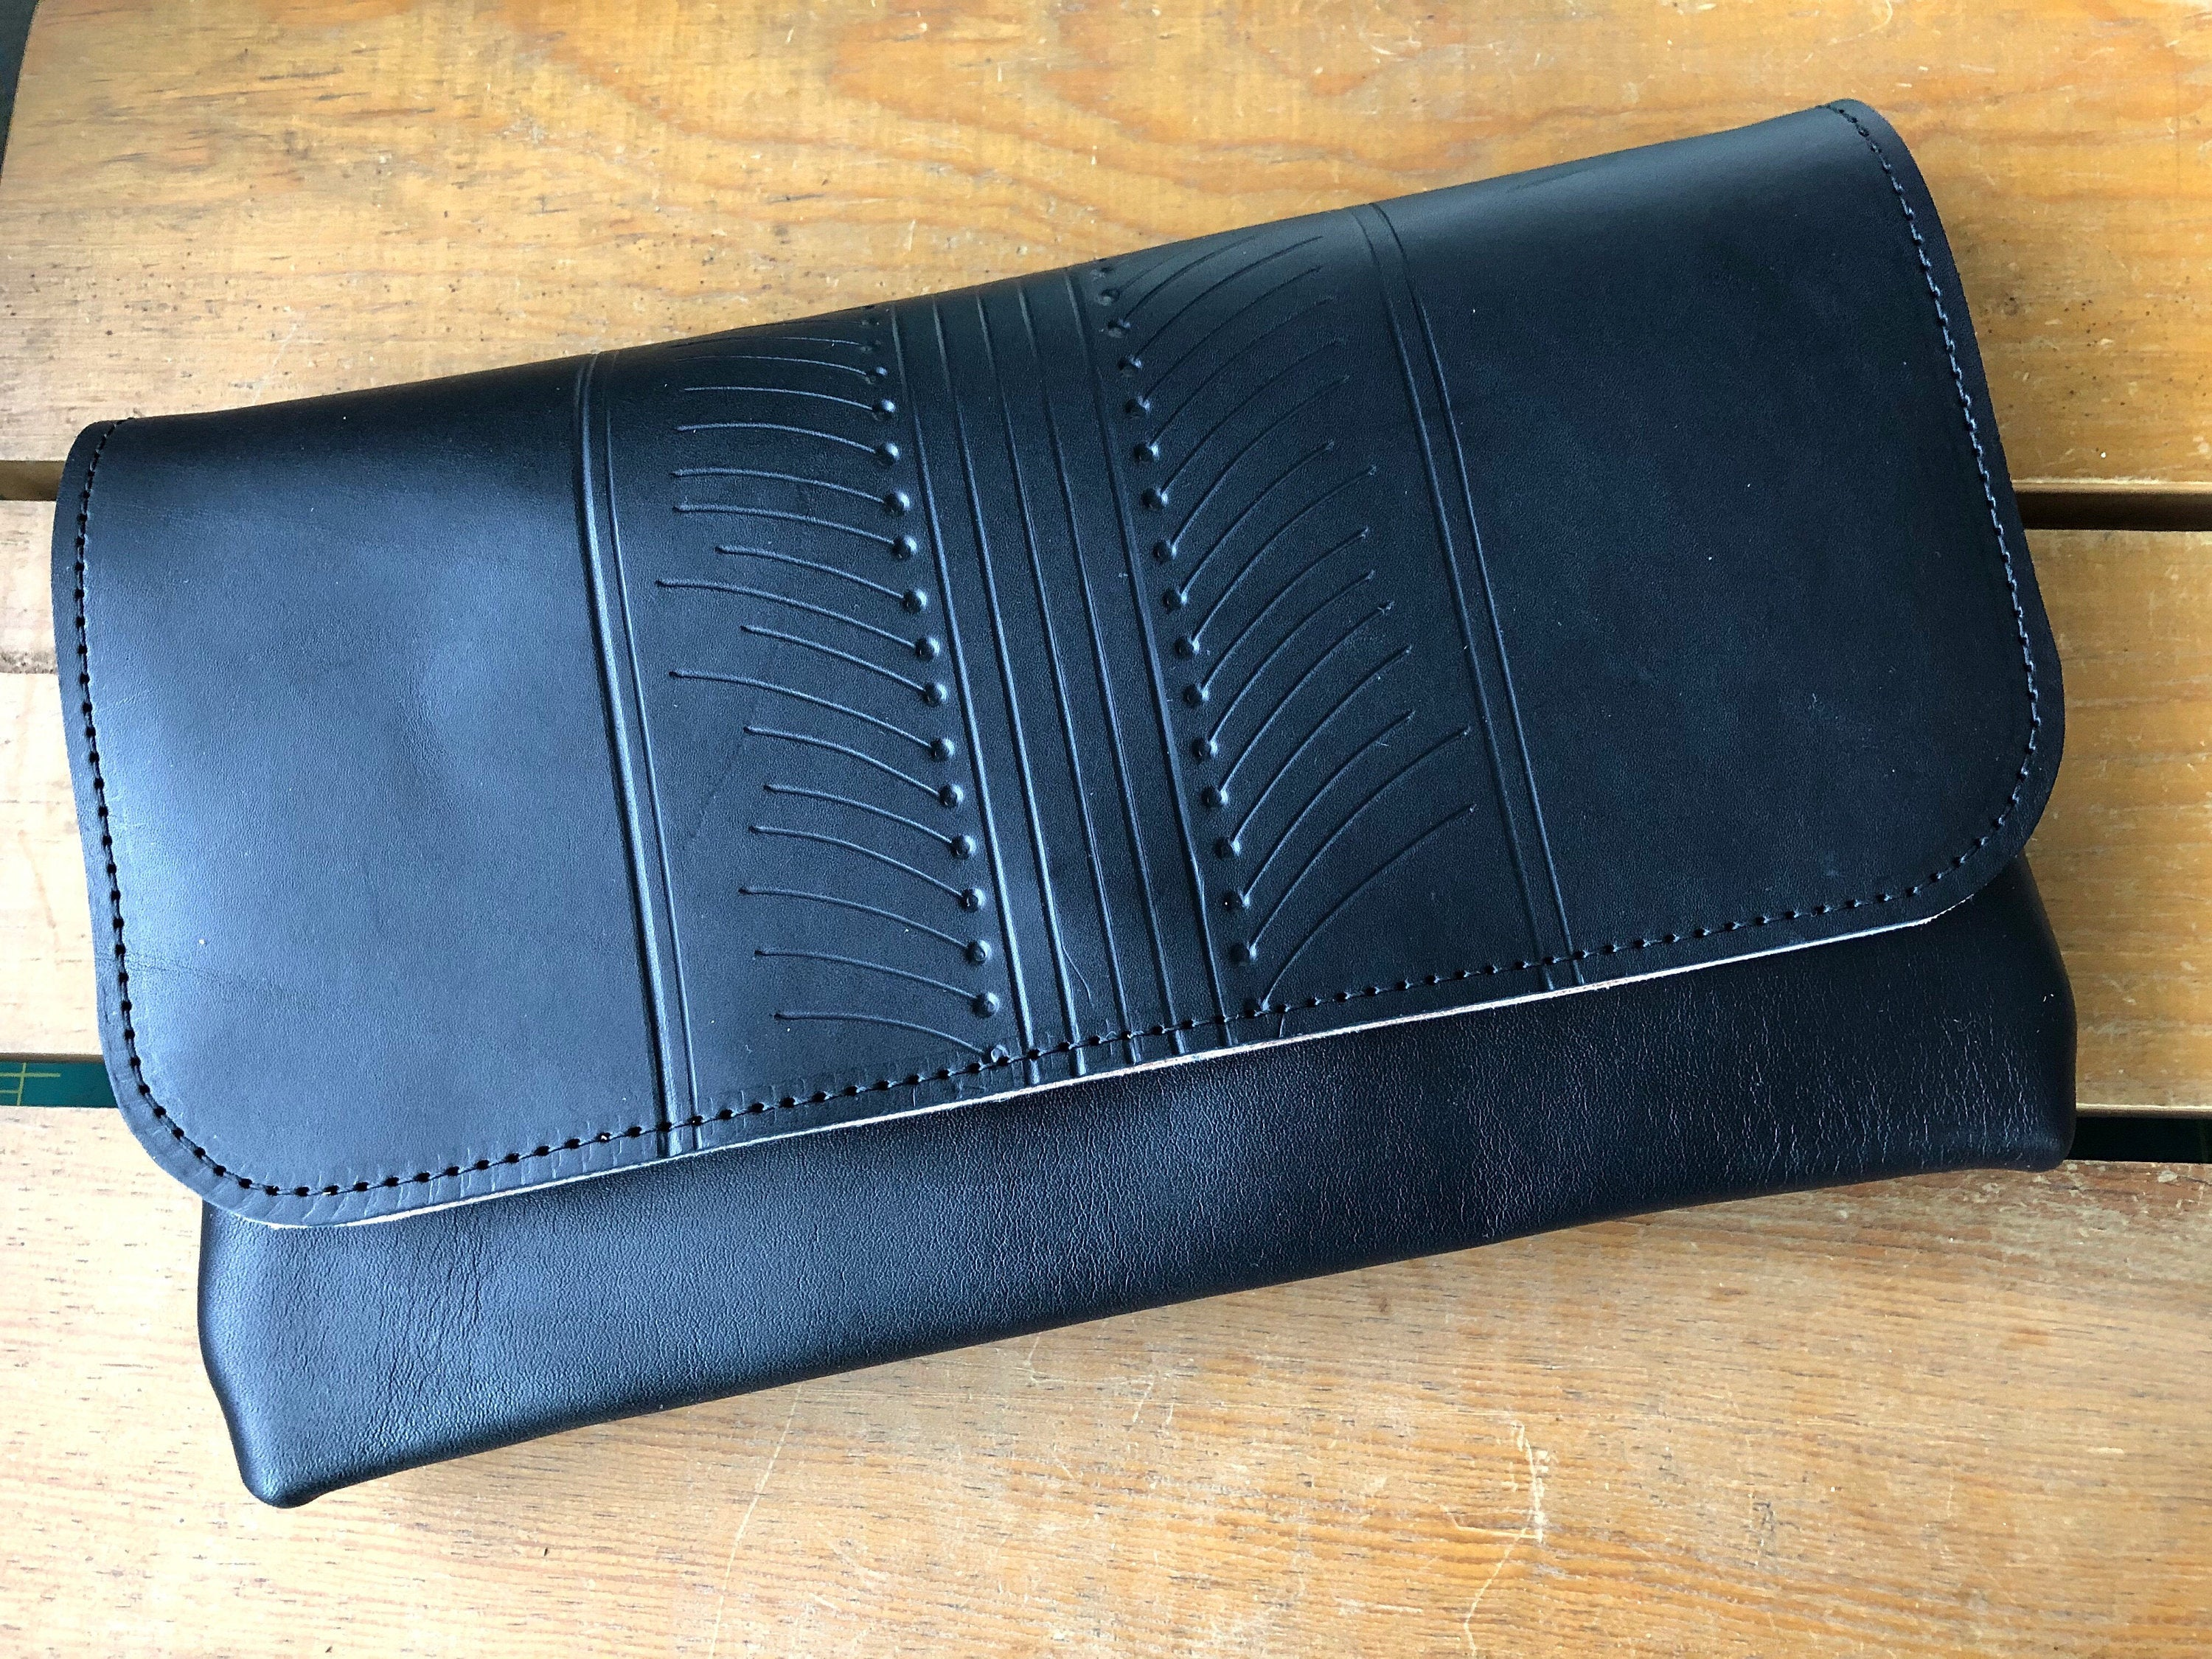 Black leather clutch with patterned design on front, sitting on a table